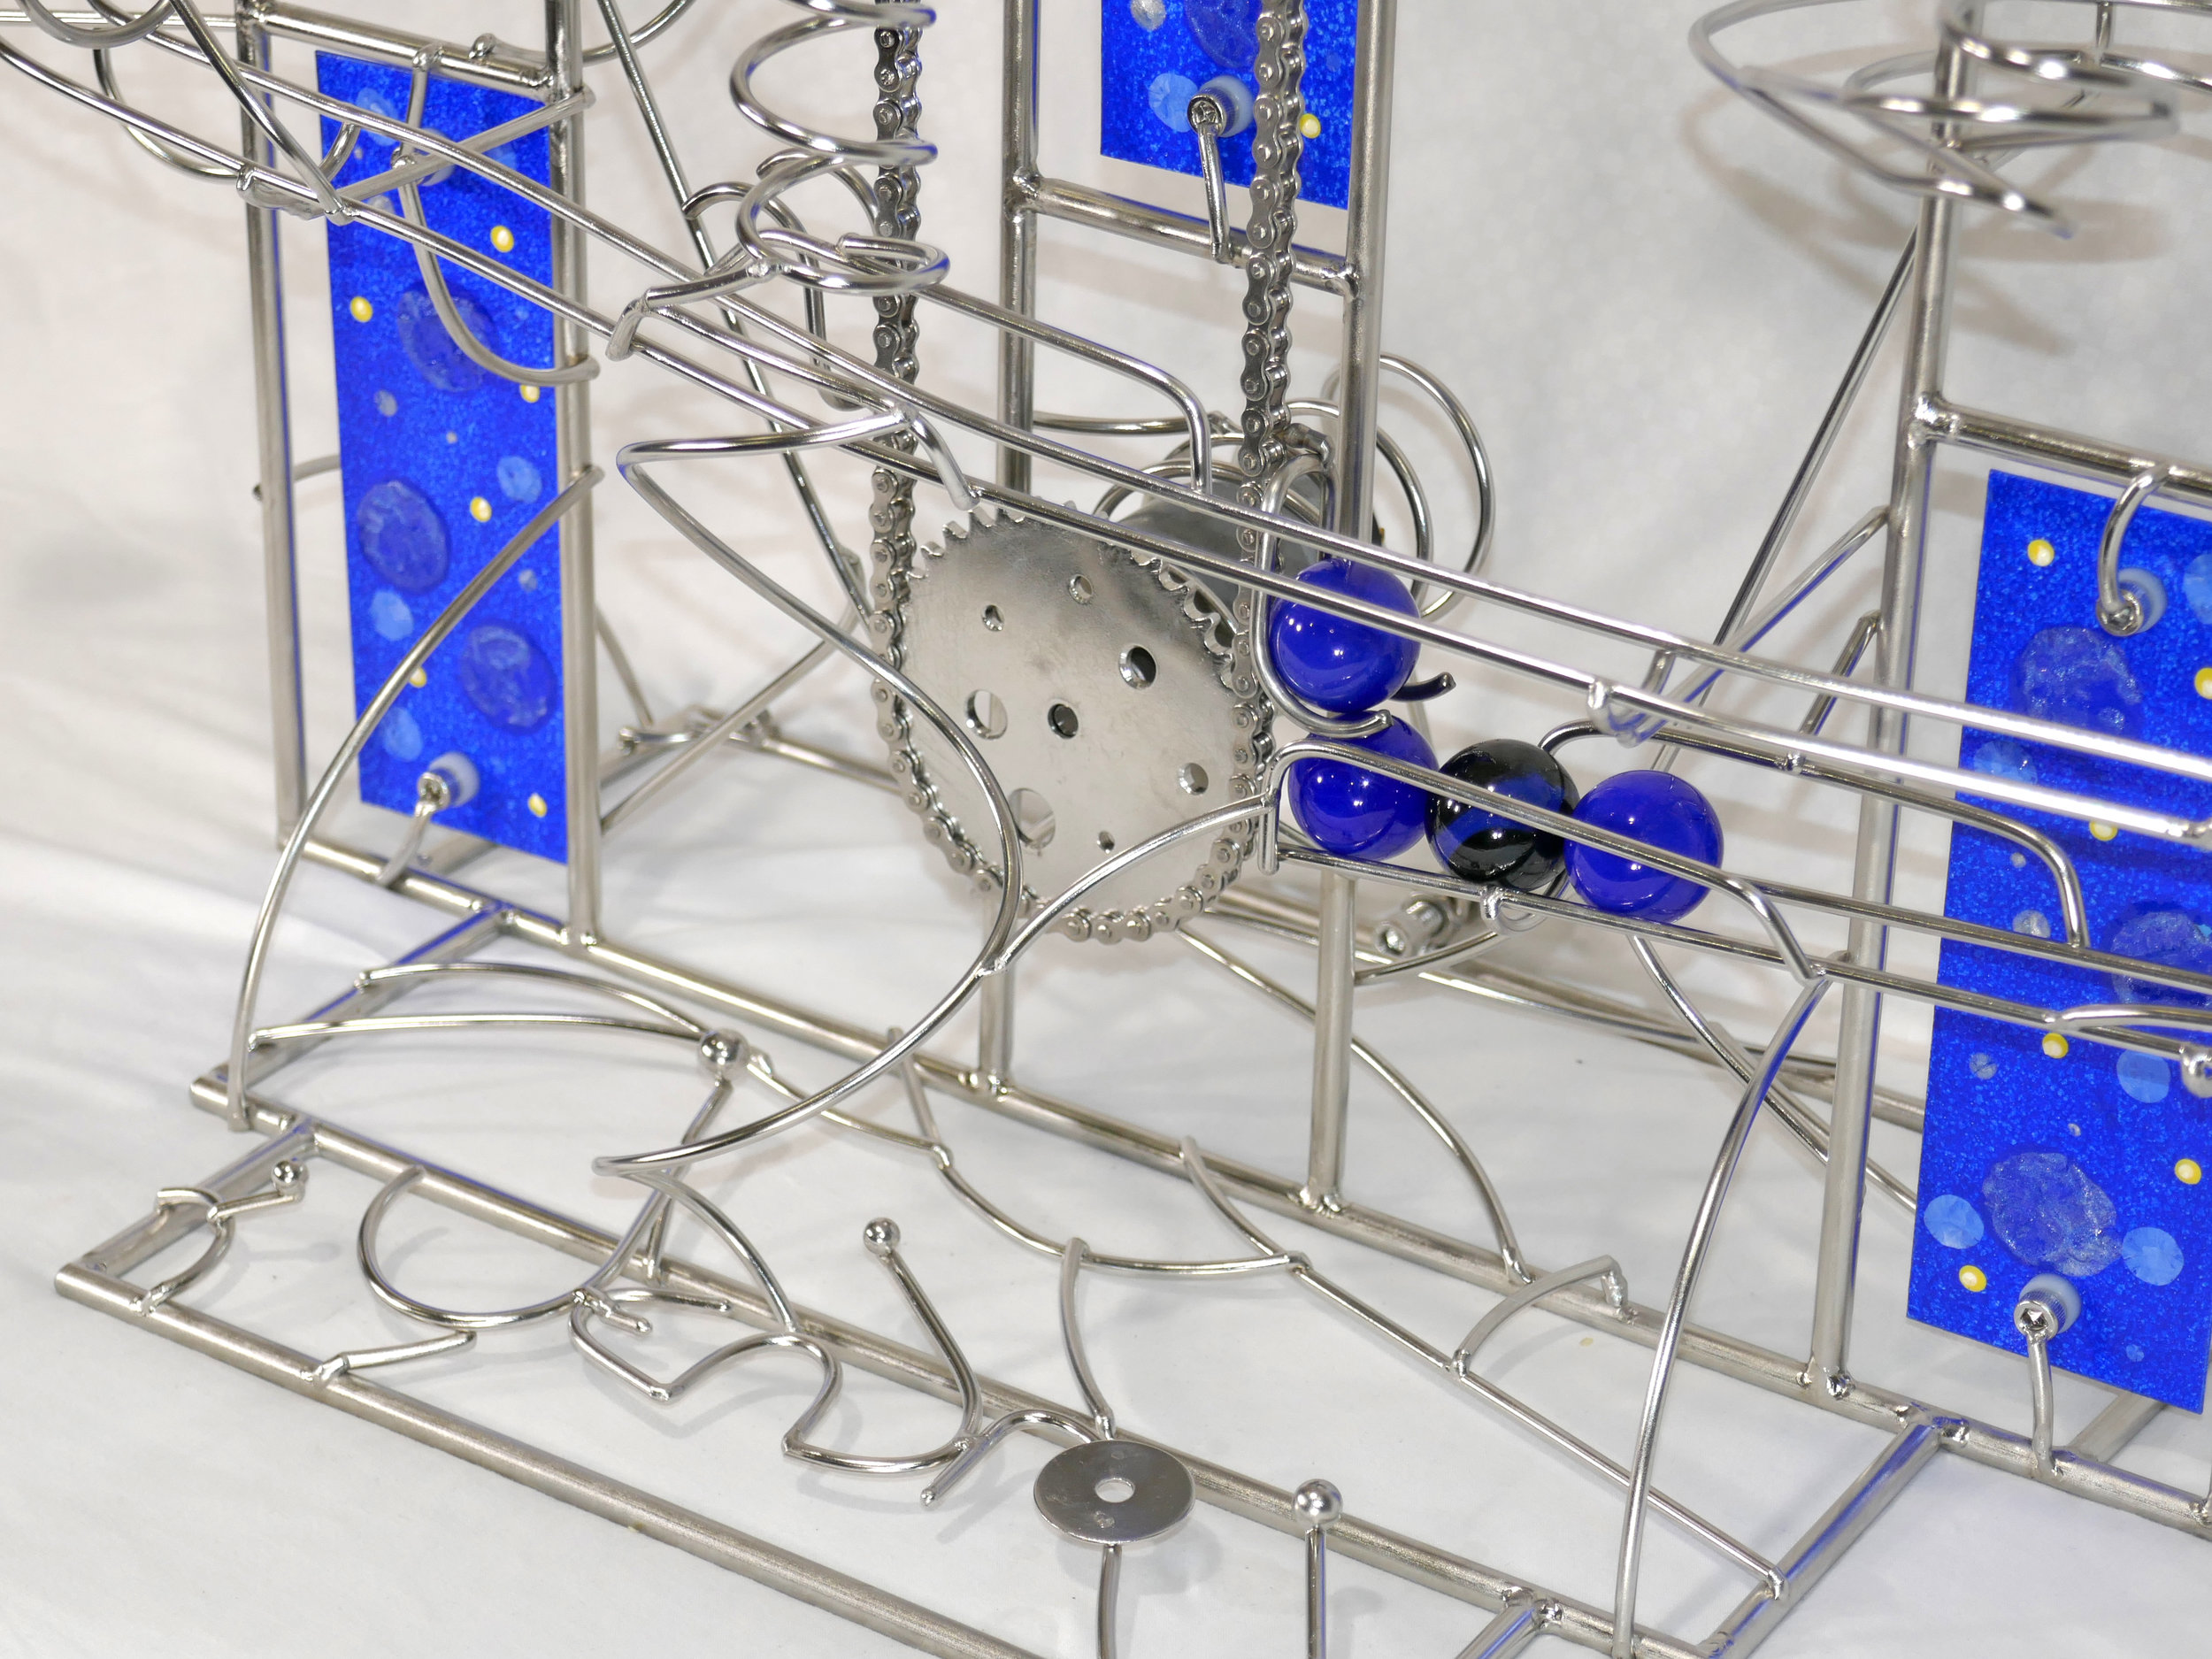 Rolling Ball Sculpture - kinetic art works - showing the blue marbles going up the chain lift with artists signature in metal